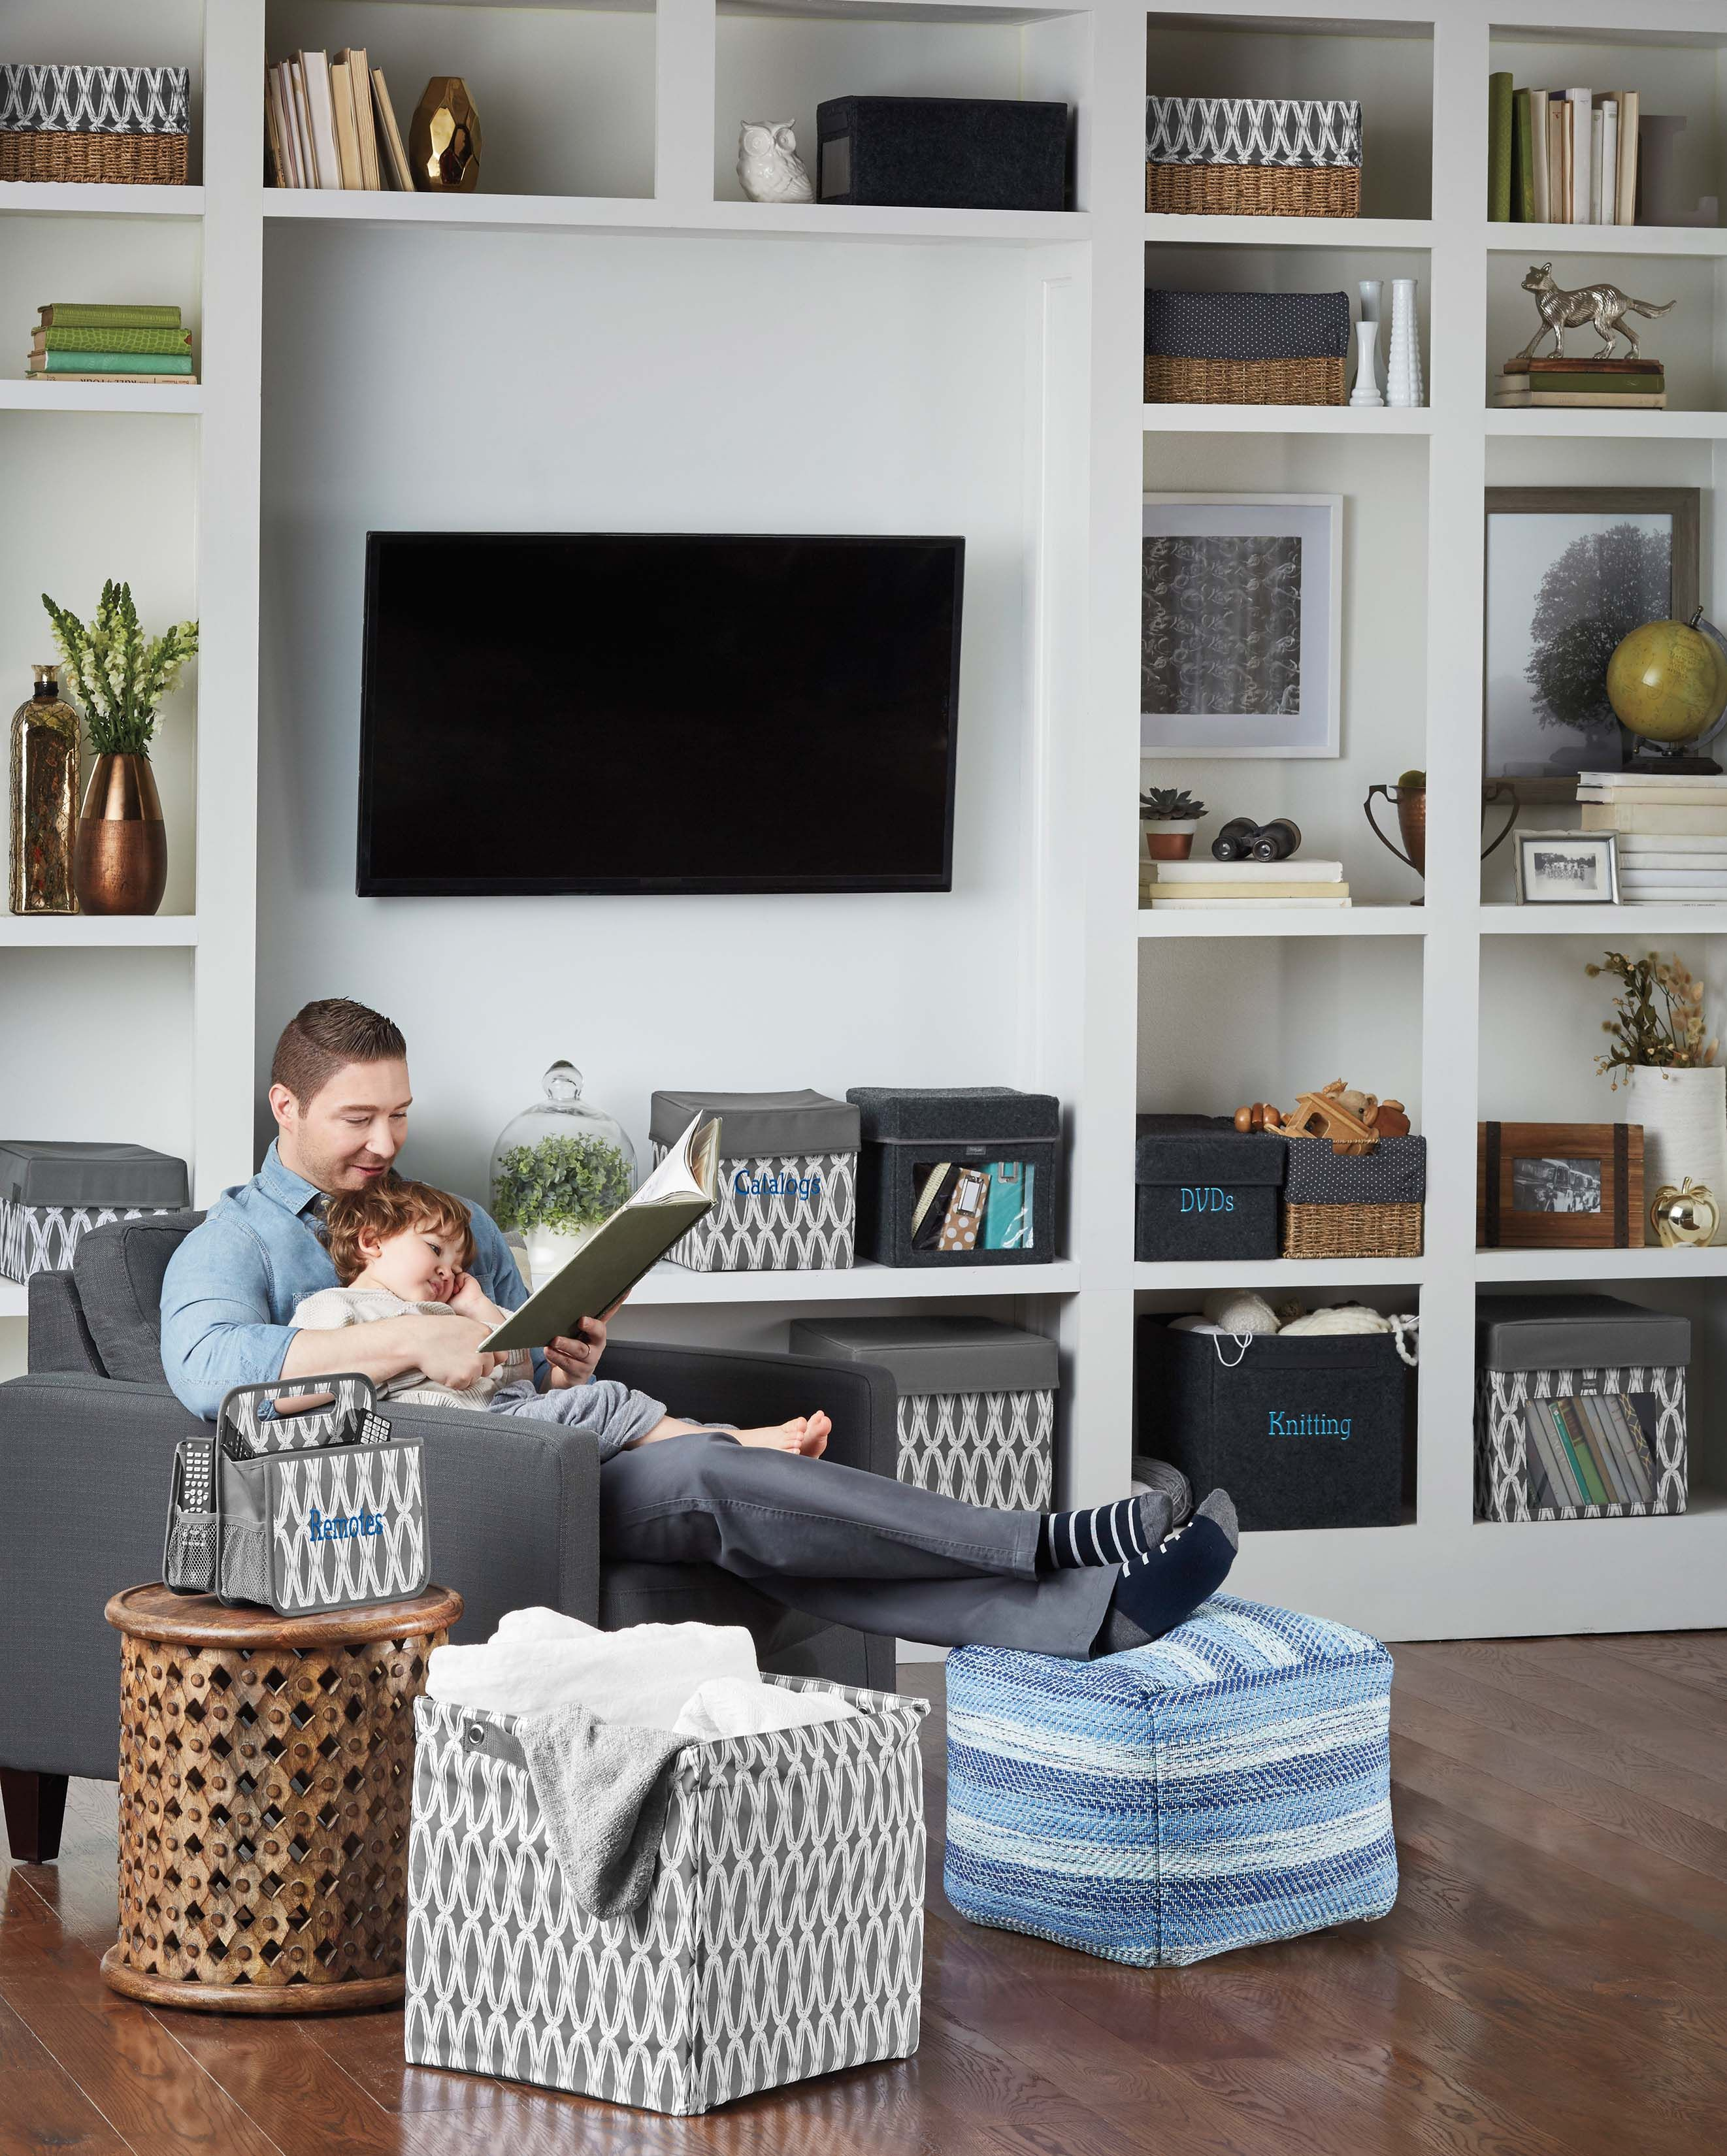 Living Room Organization Ideas For Interior Design Thirty One Gifts Love Using The Square Storage Bin Blankets Charcoal Links Is A Great Neutral Compliment To Any Home